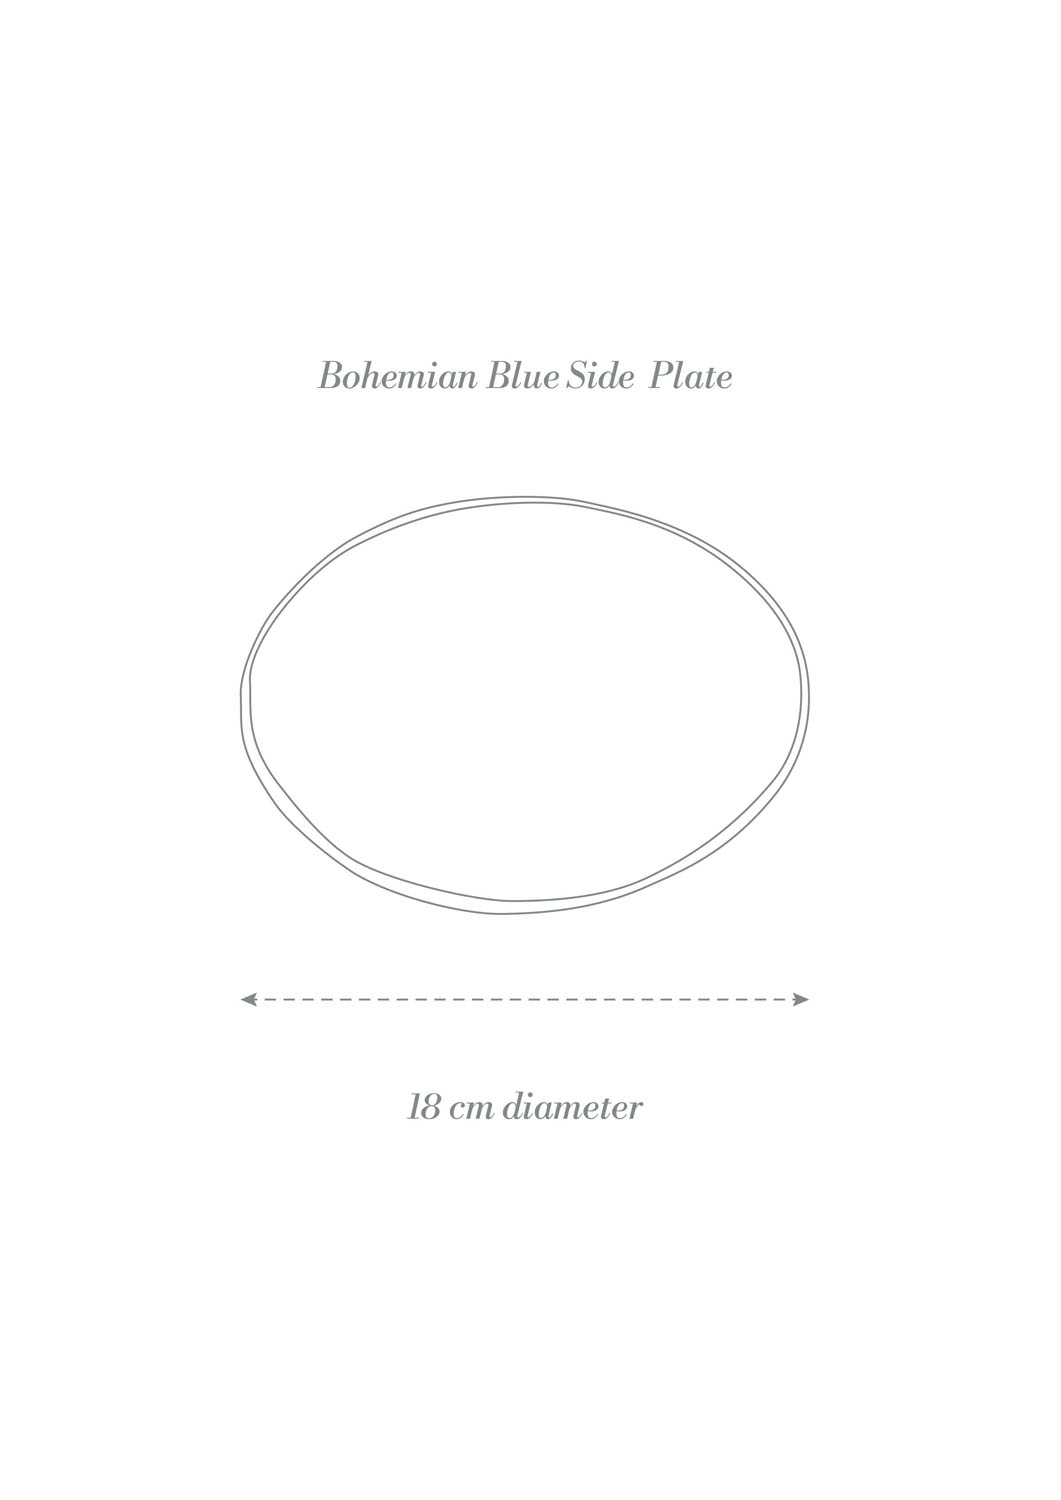 Bohemian Blue Dinner Set Side Plate Product Diagram